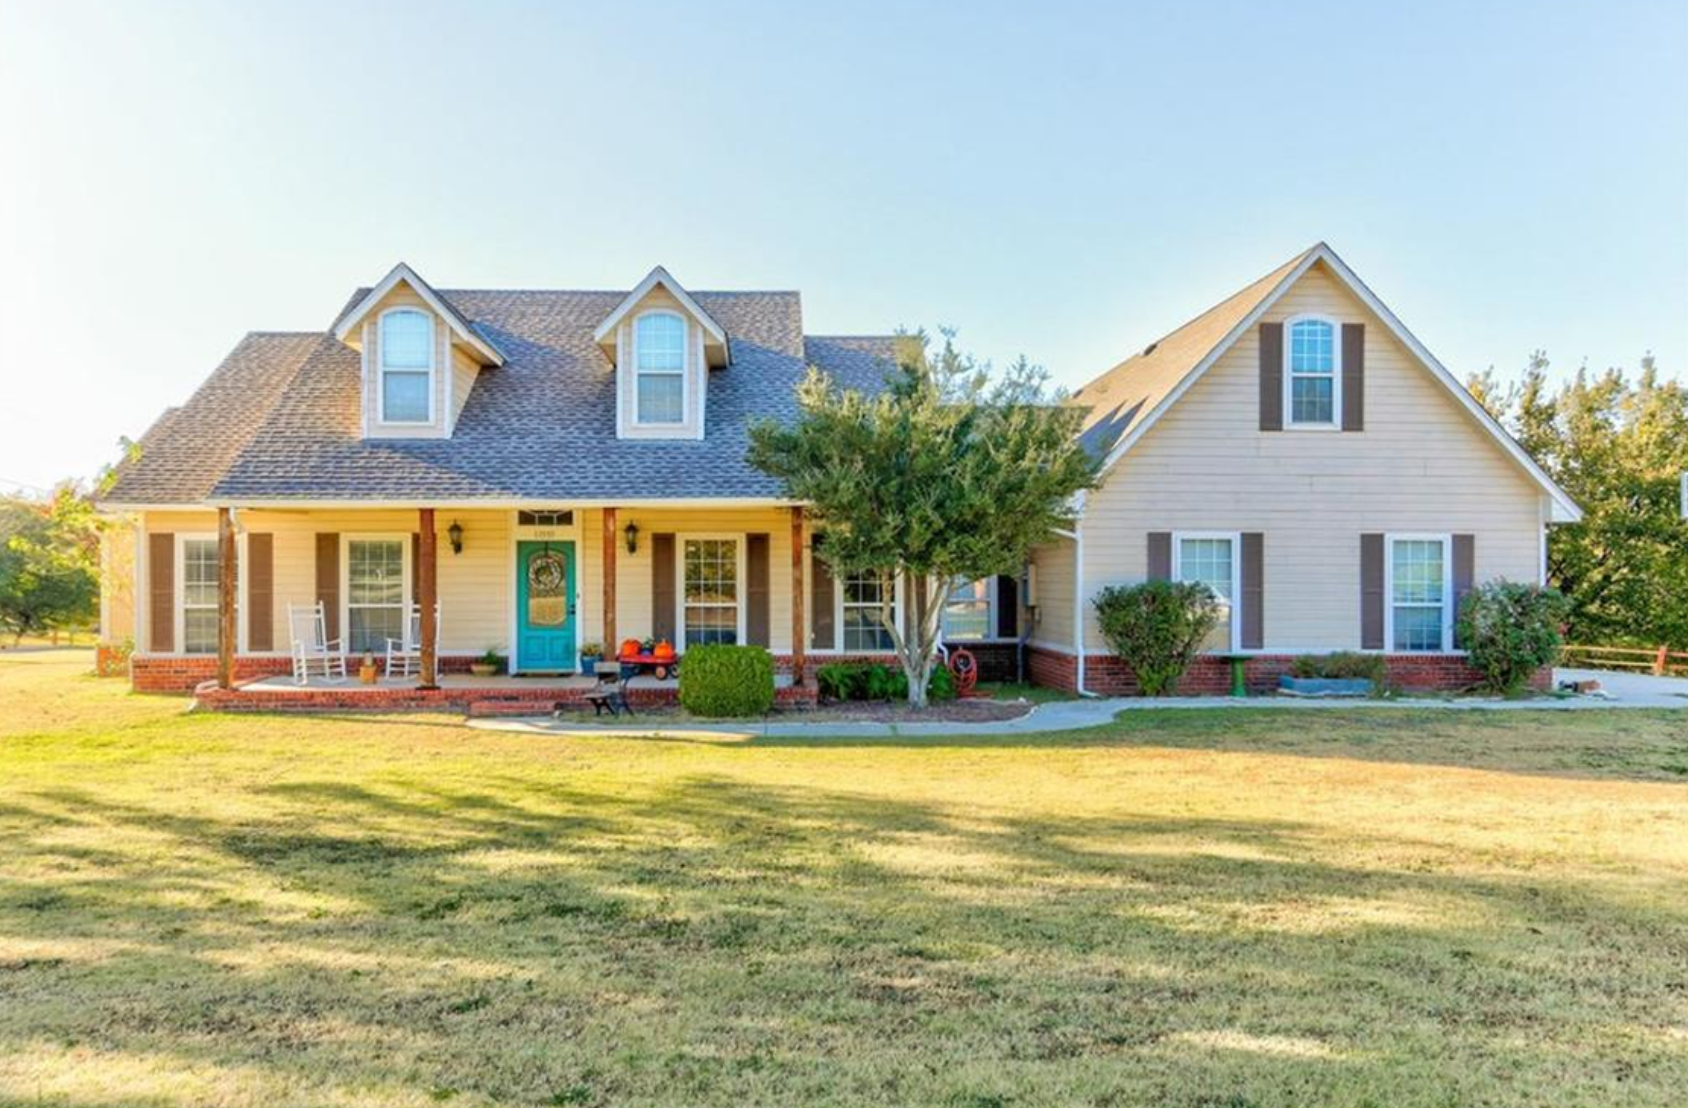 Featured Homes for Sale in Piedmont OK